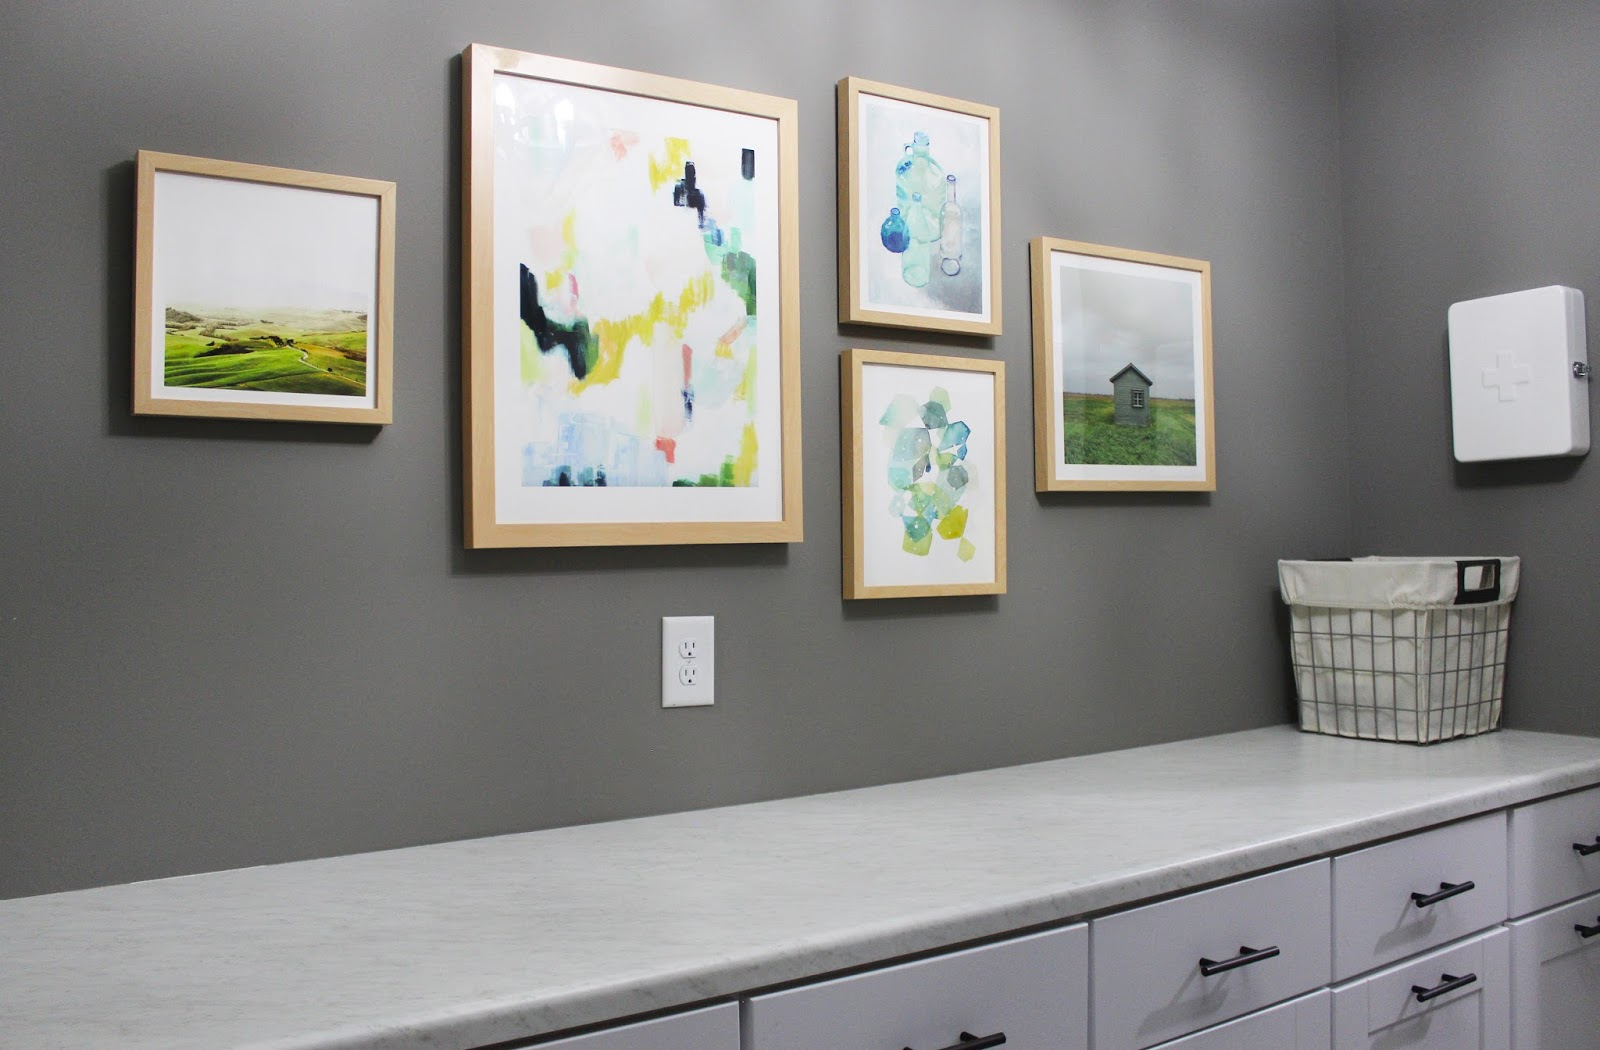 Laundry Room Picture Frames Room Tour Laundry Room  Minted Art